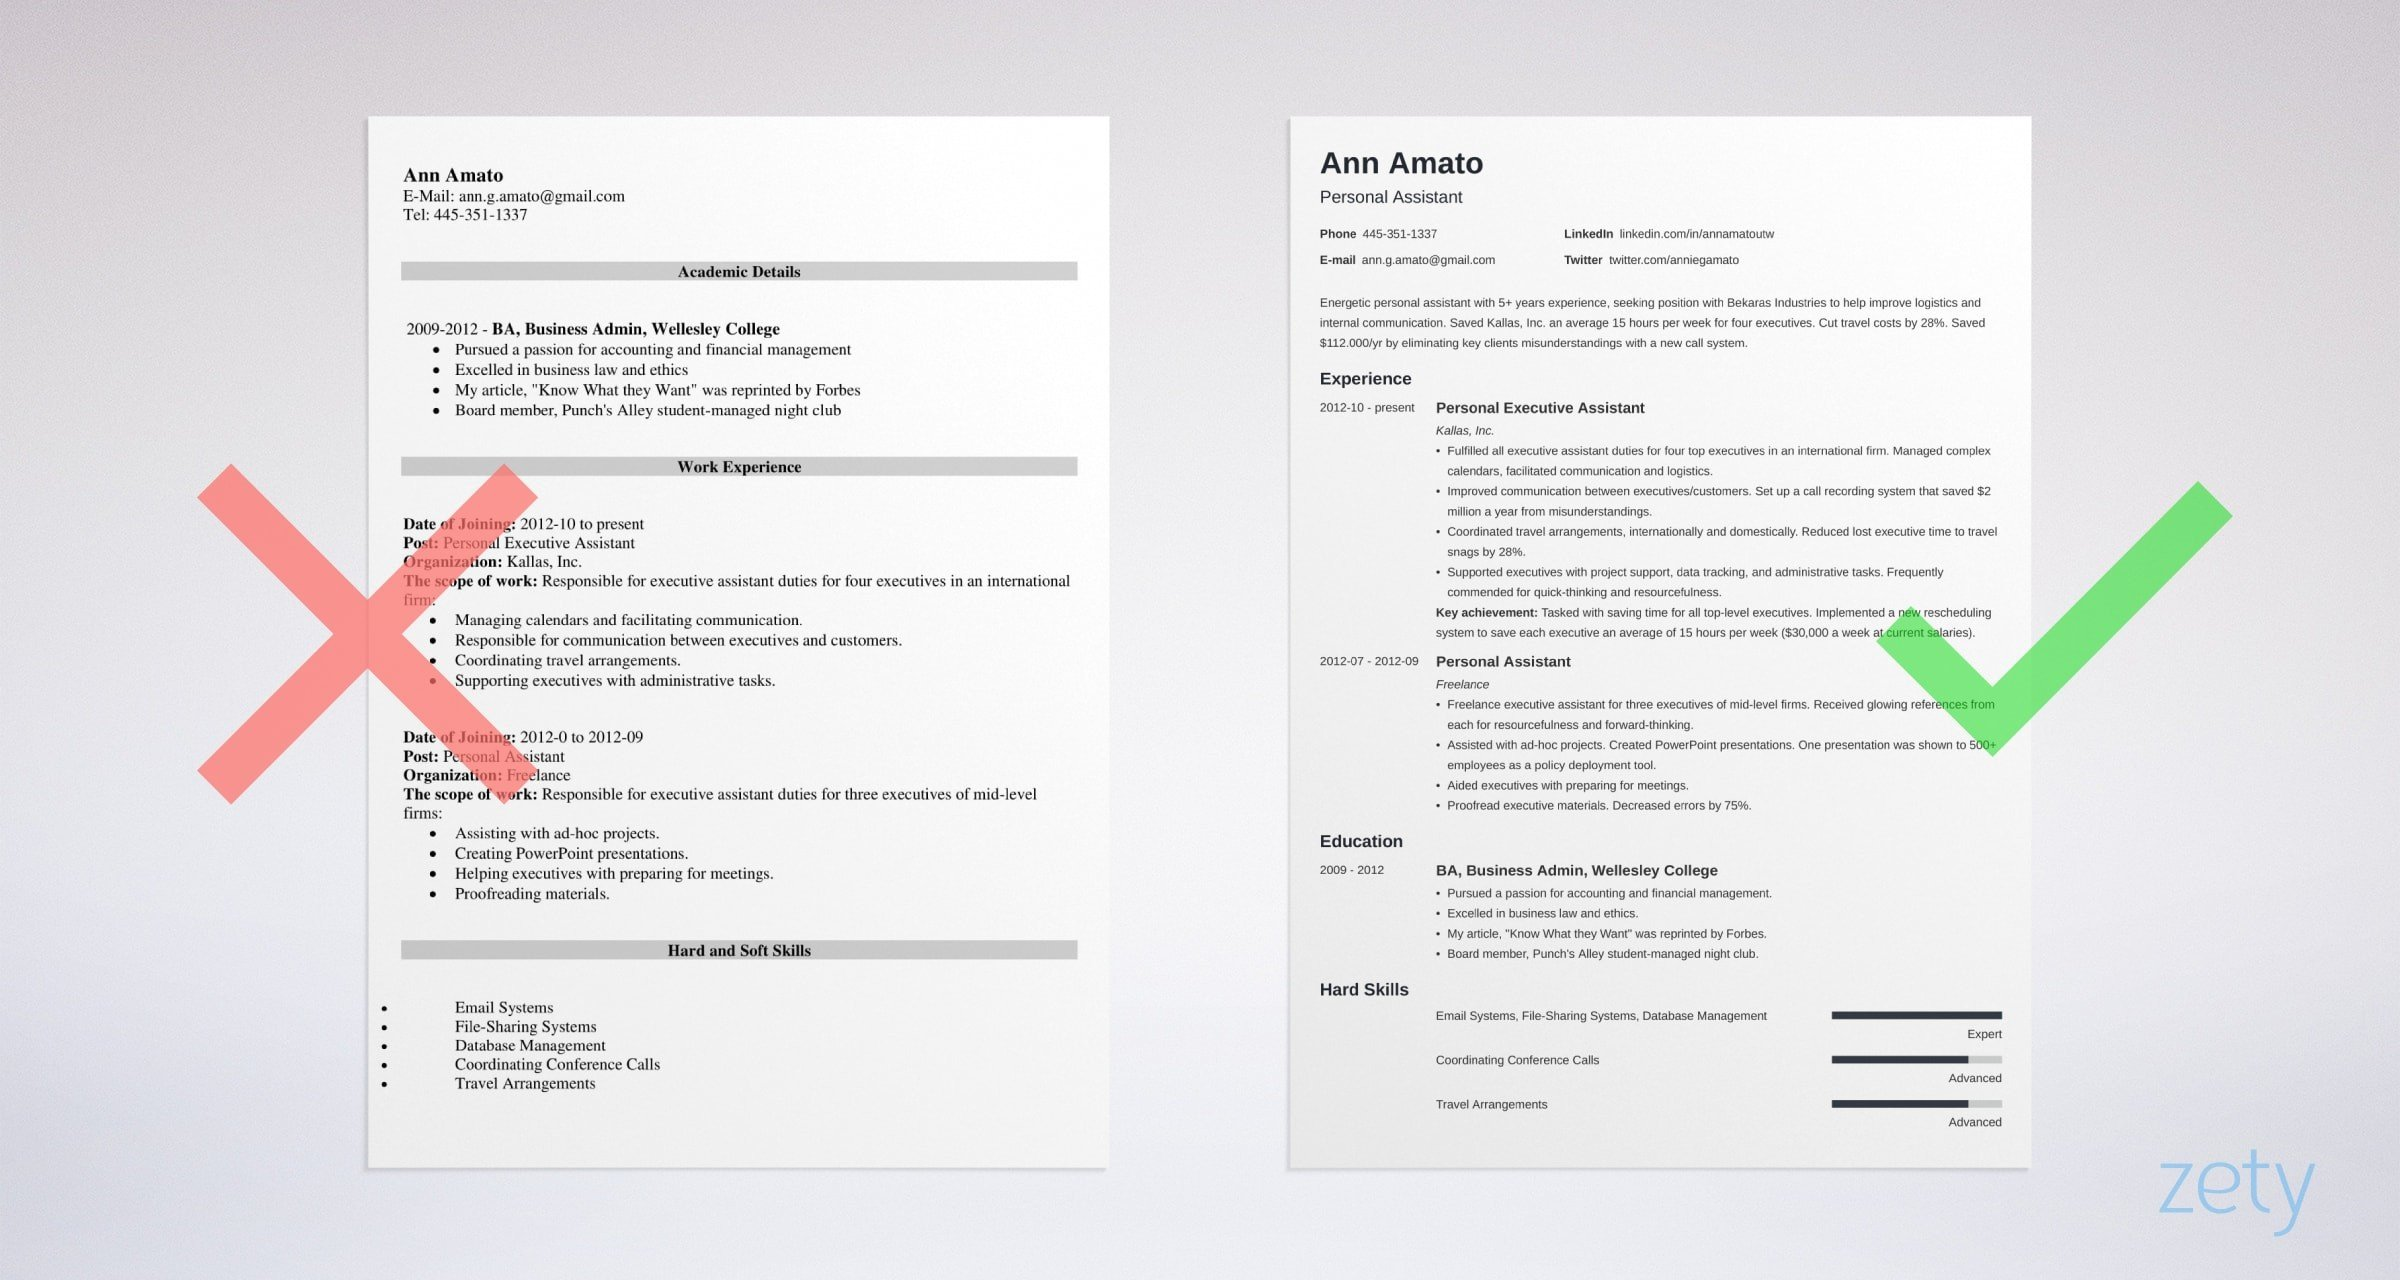 Resume Format: Samples And Templates For All Types Of Resumes (10